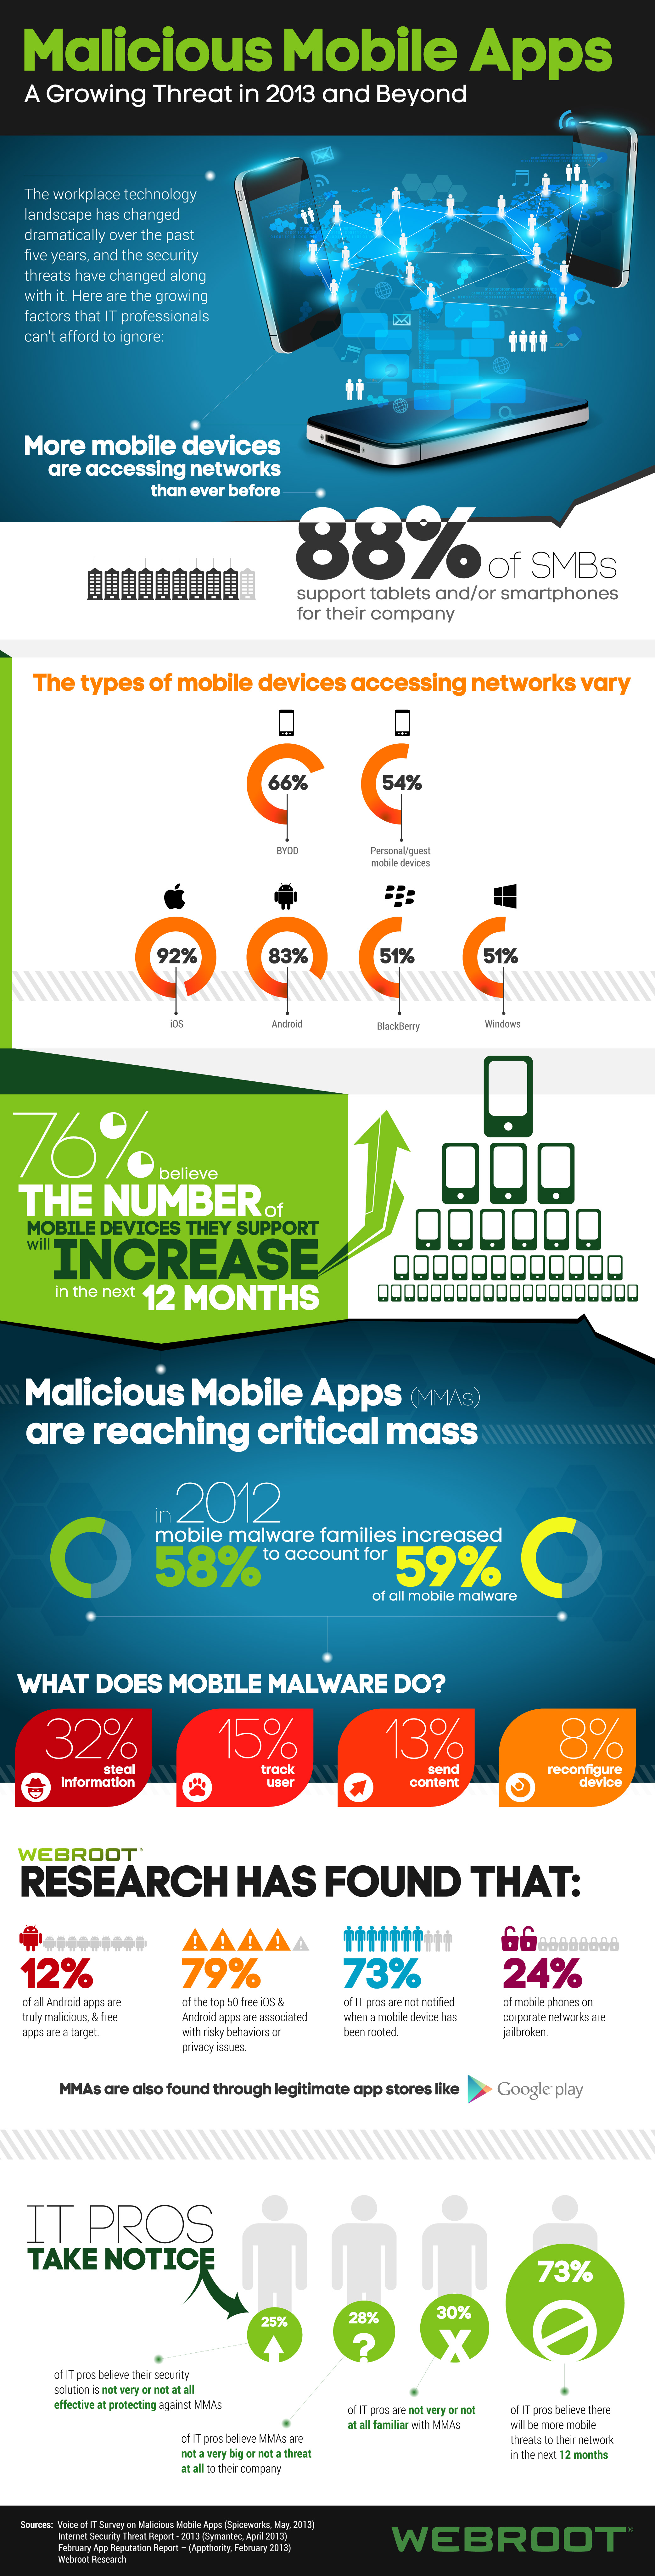 Malware has evolved - infographic